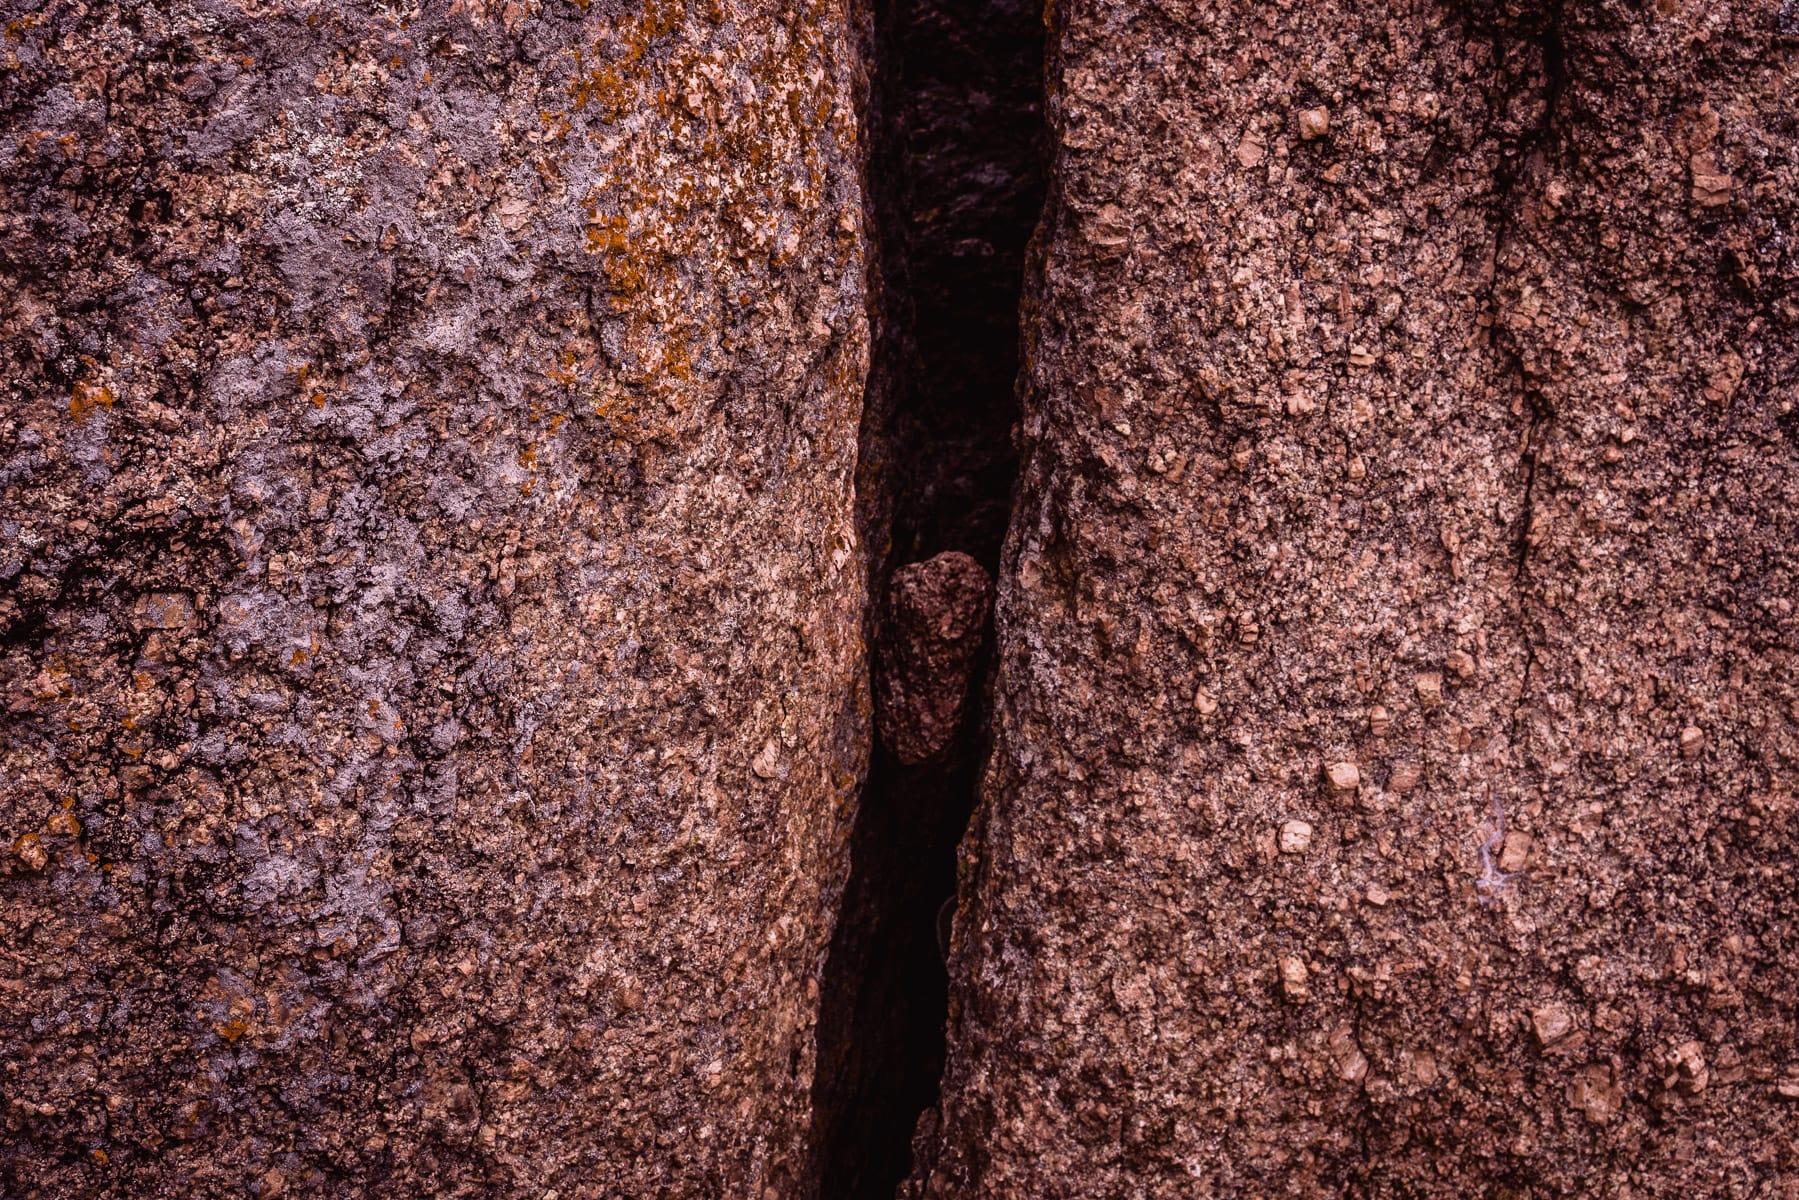 A rock trapped in a chasm between two larger rocks at Enchanted Rock State Natural Area, Texas.